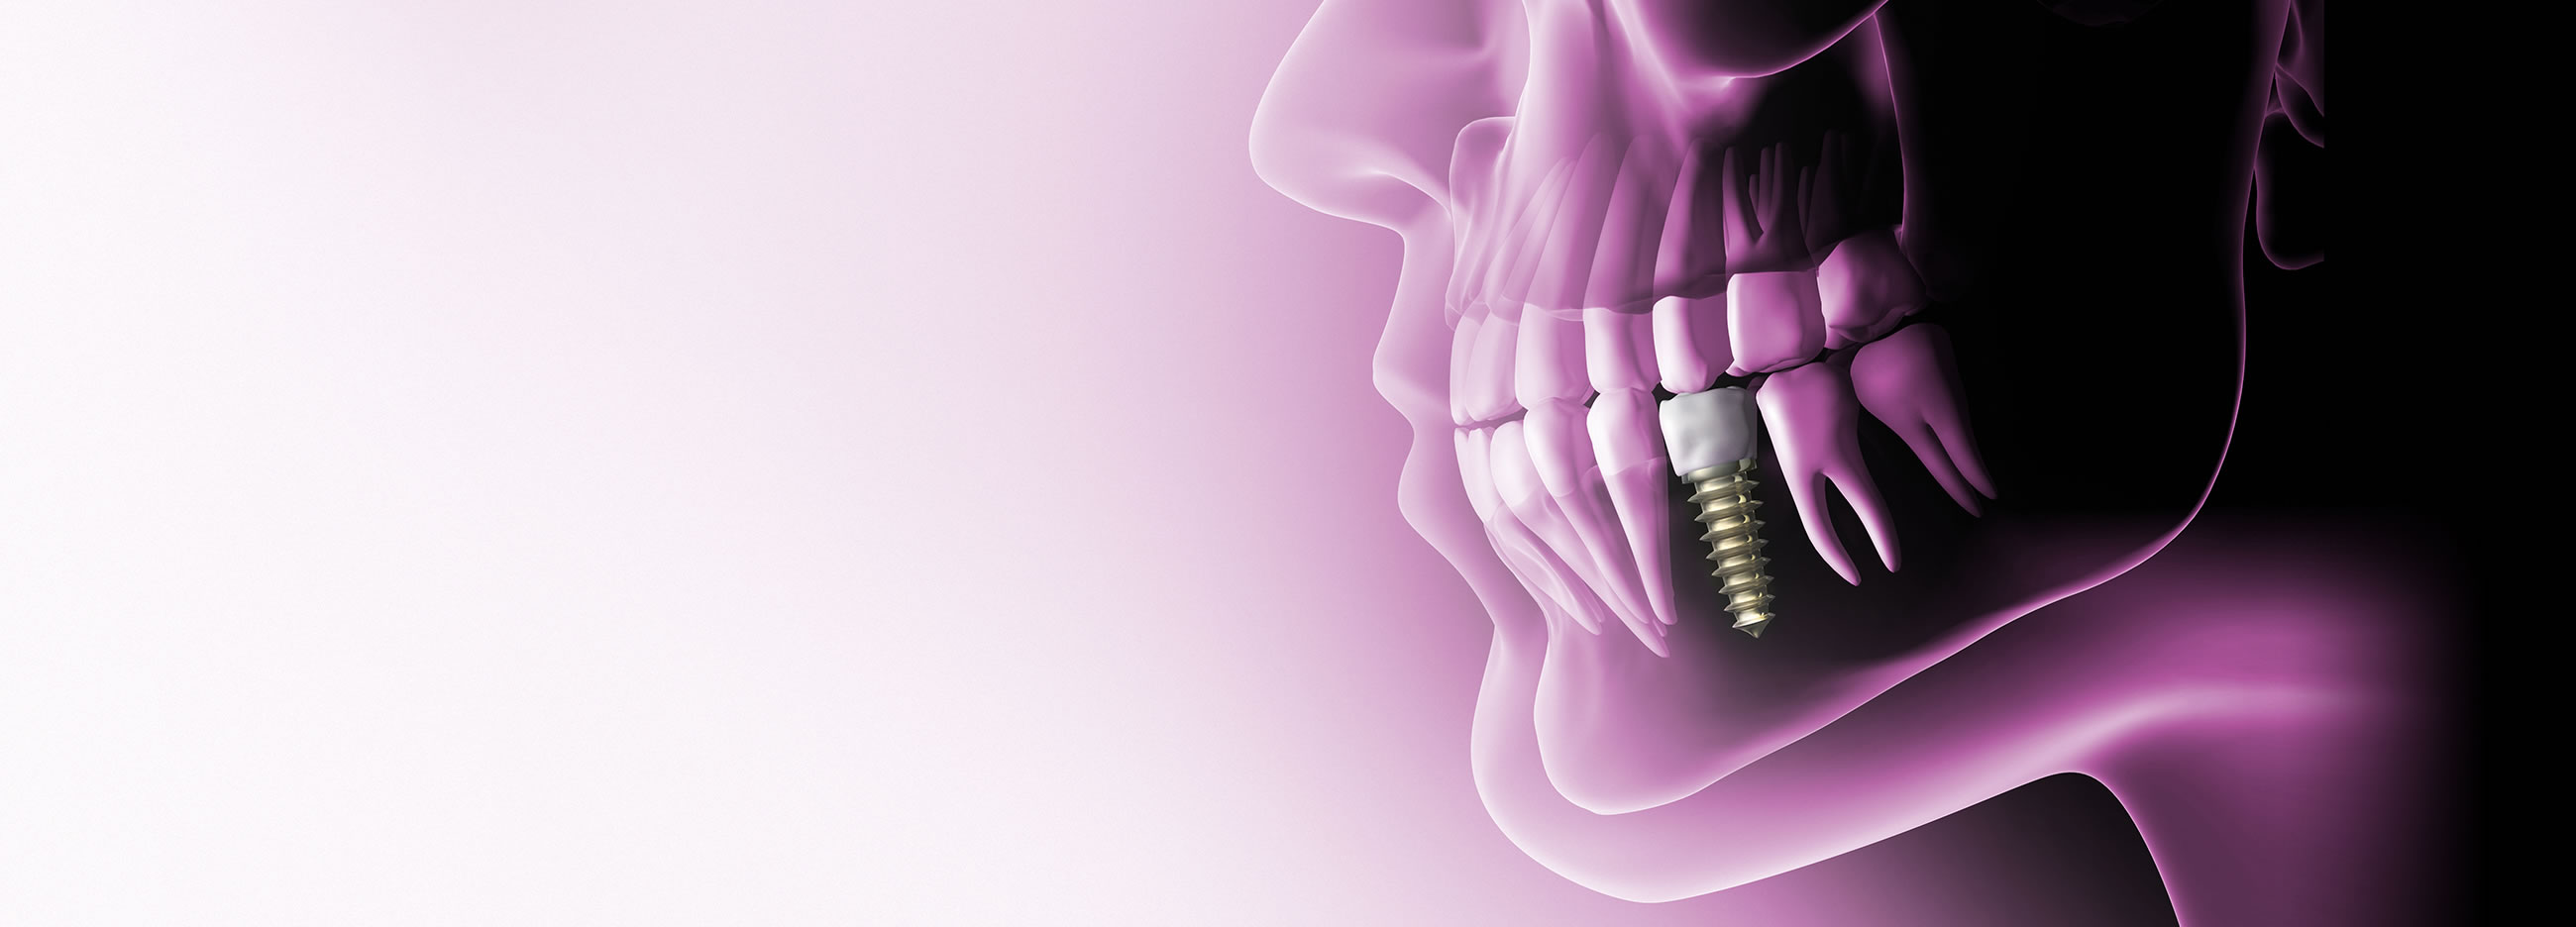 Dental Implants in Bracknell